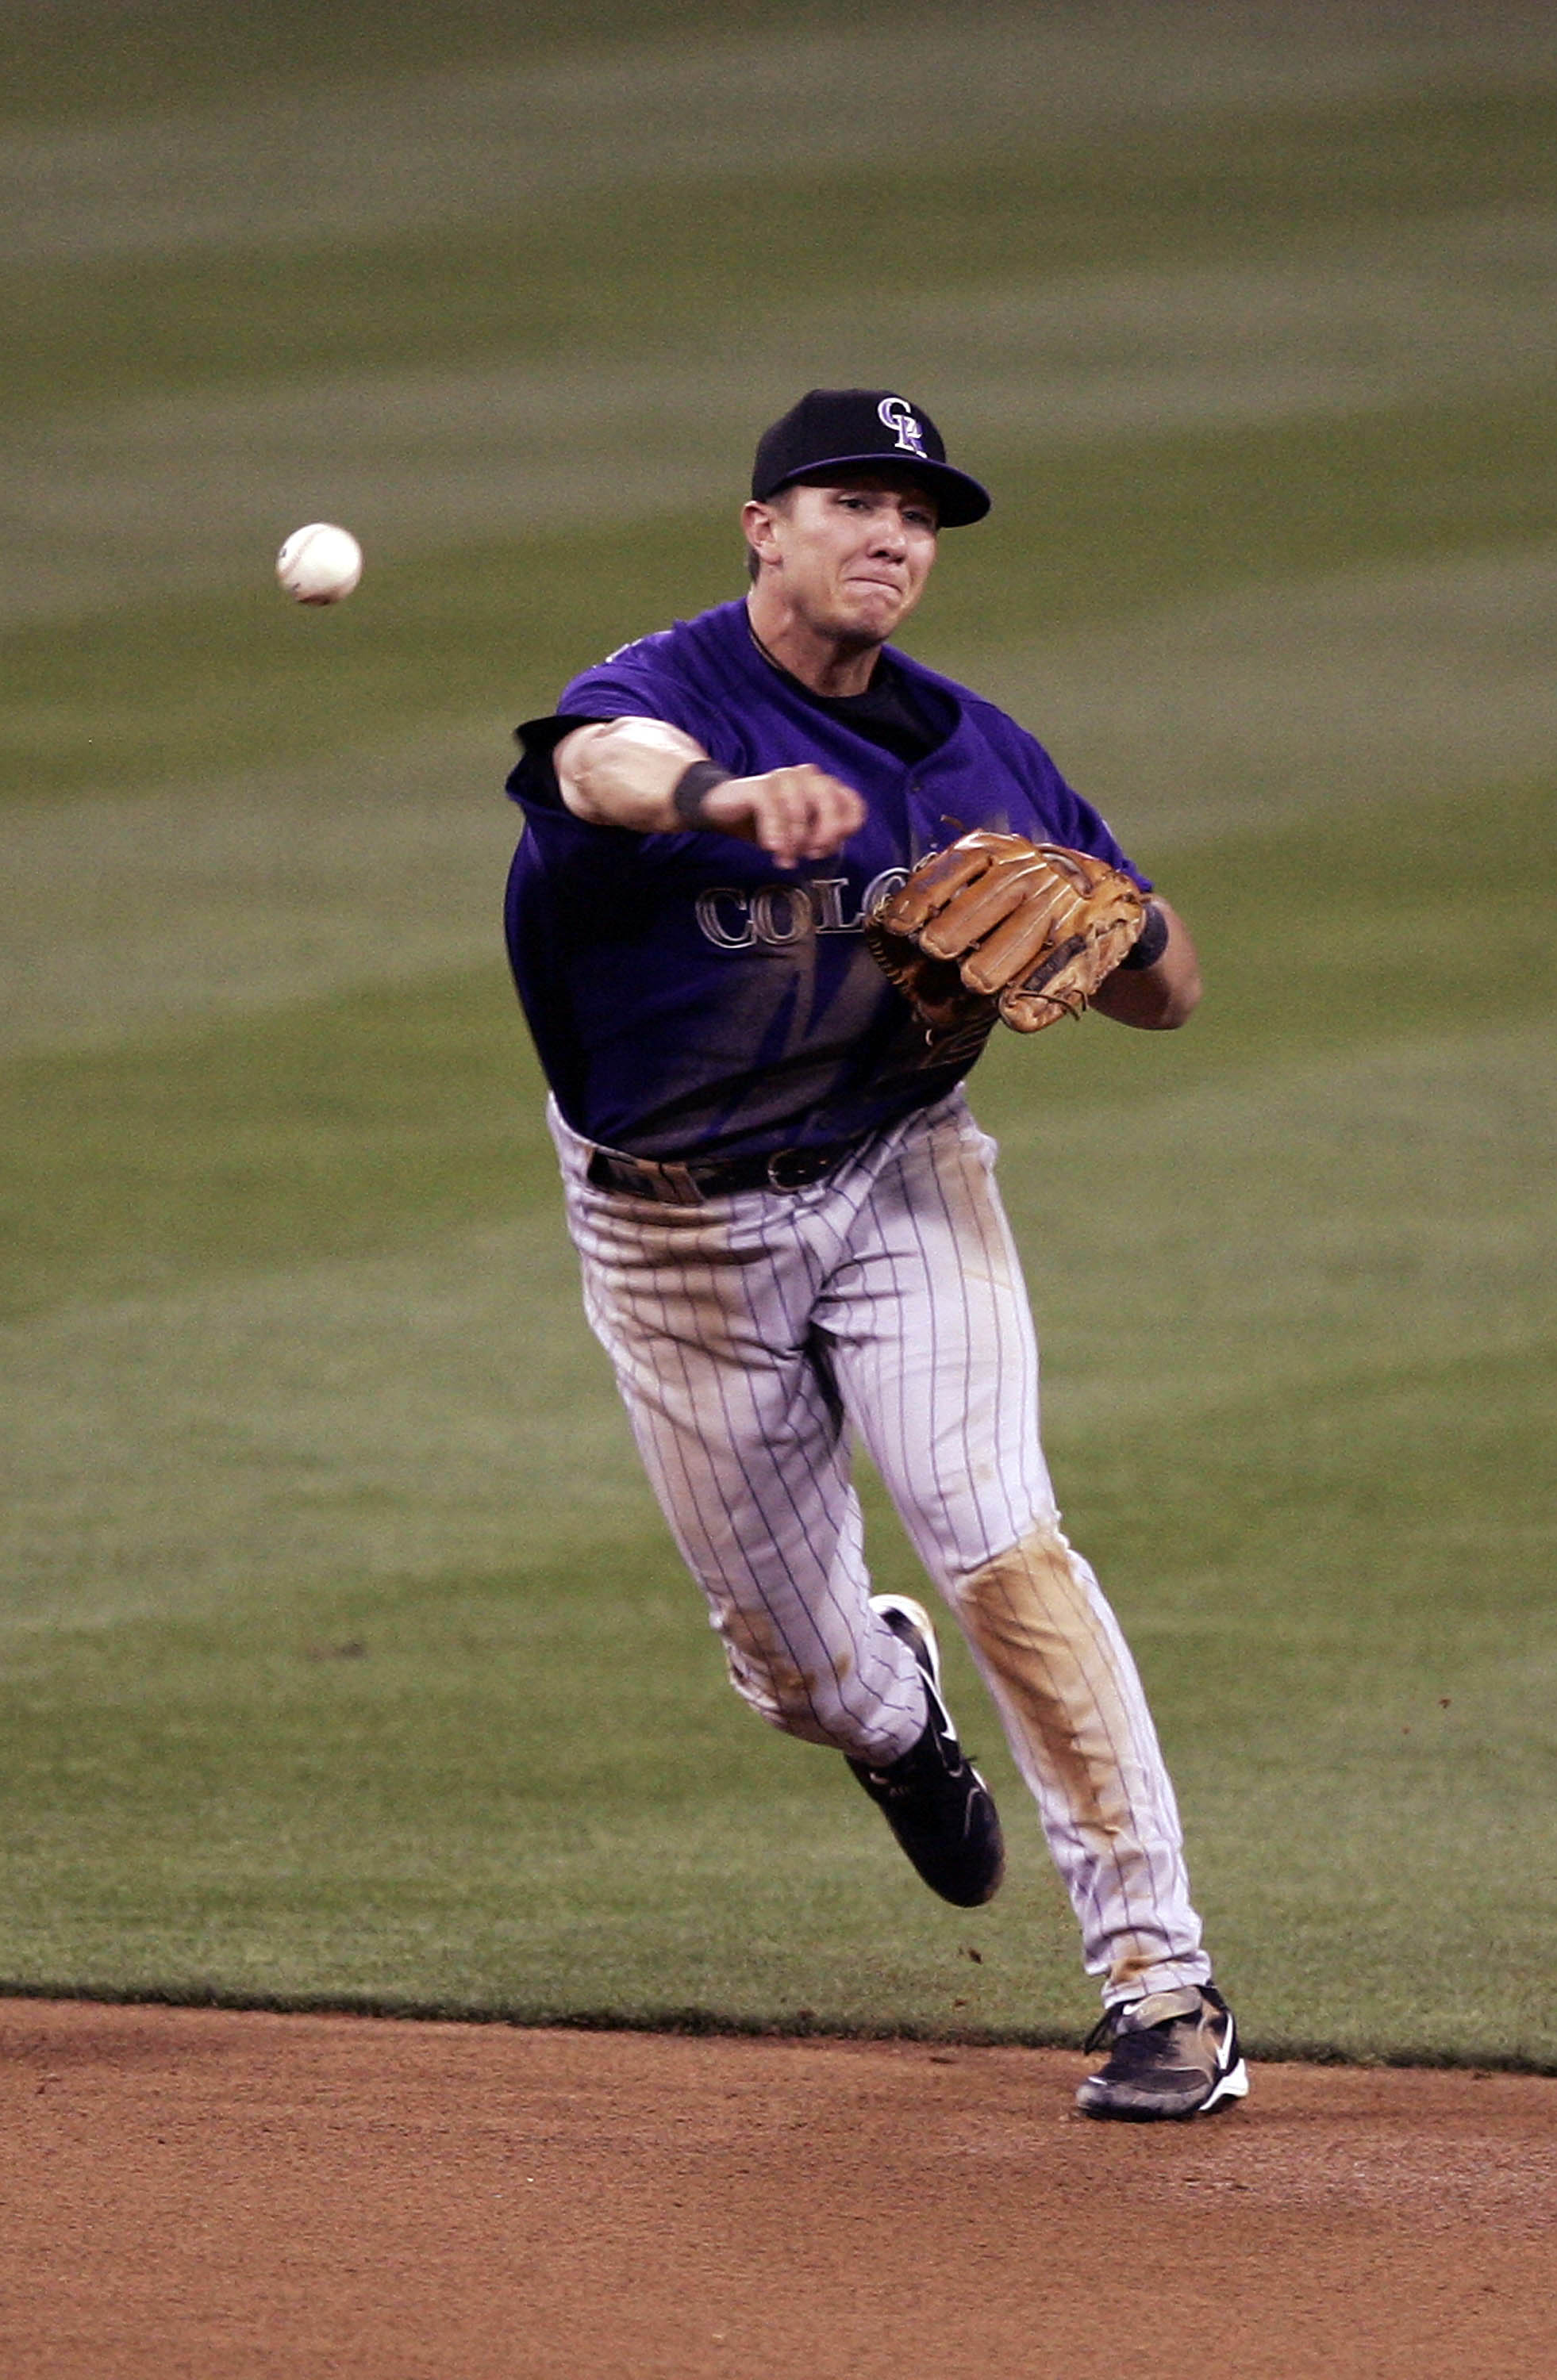 Troy Tulowitzki was 21 years old when he made his Major League debut